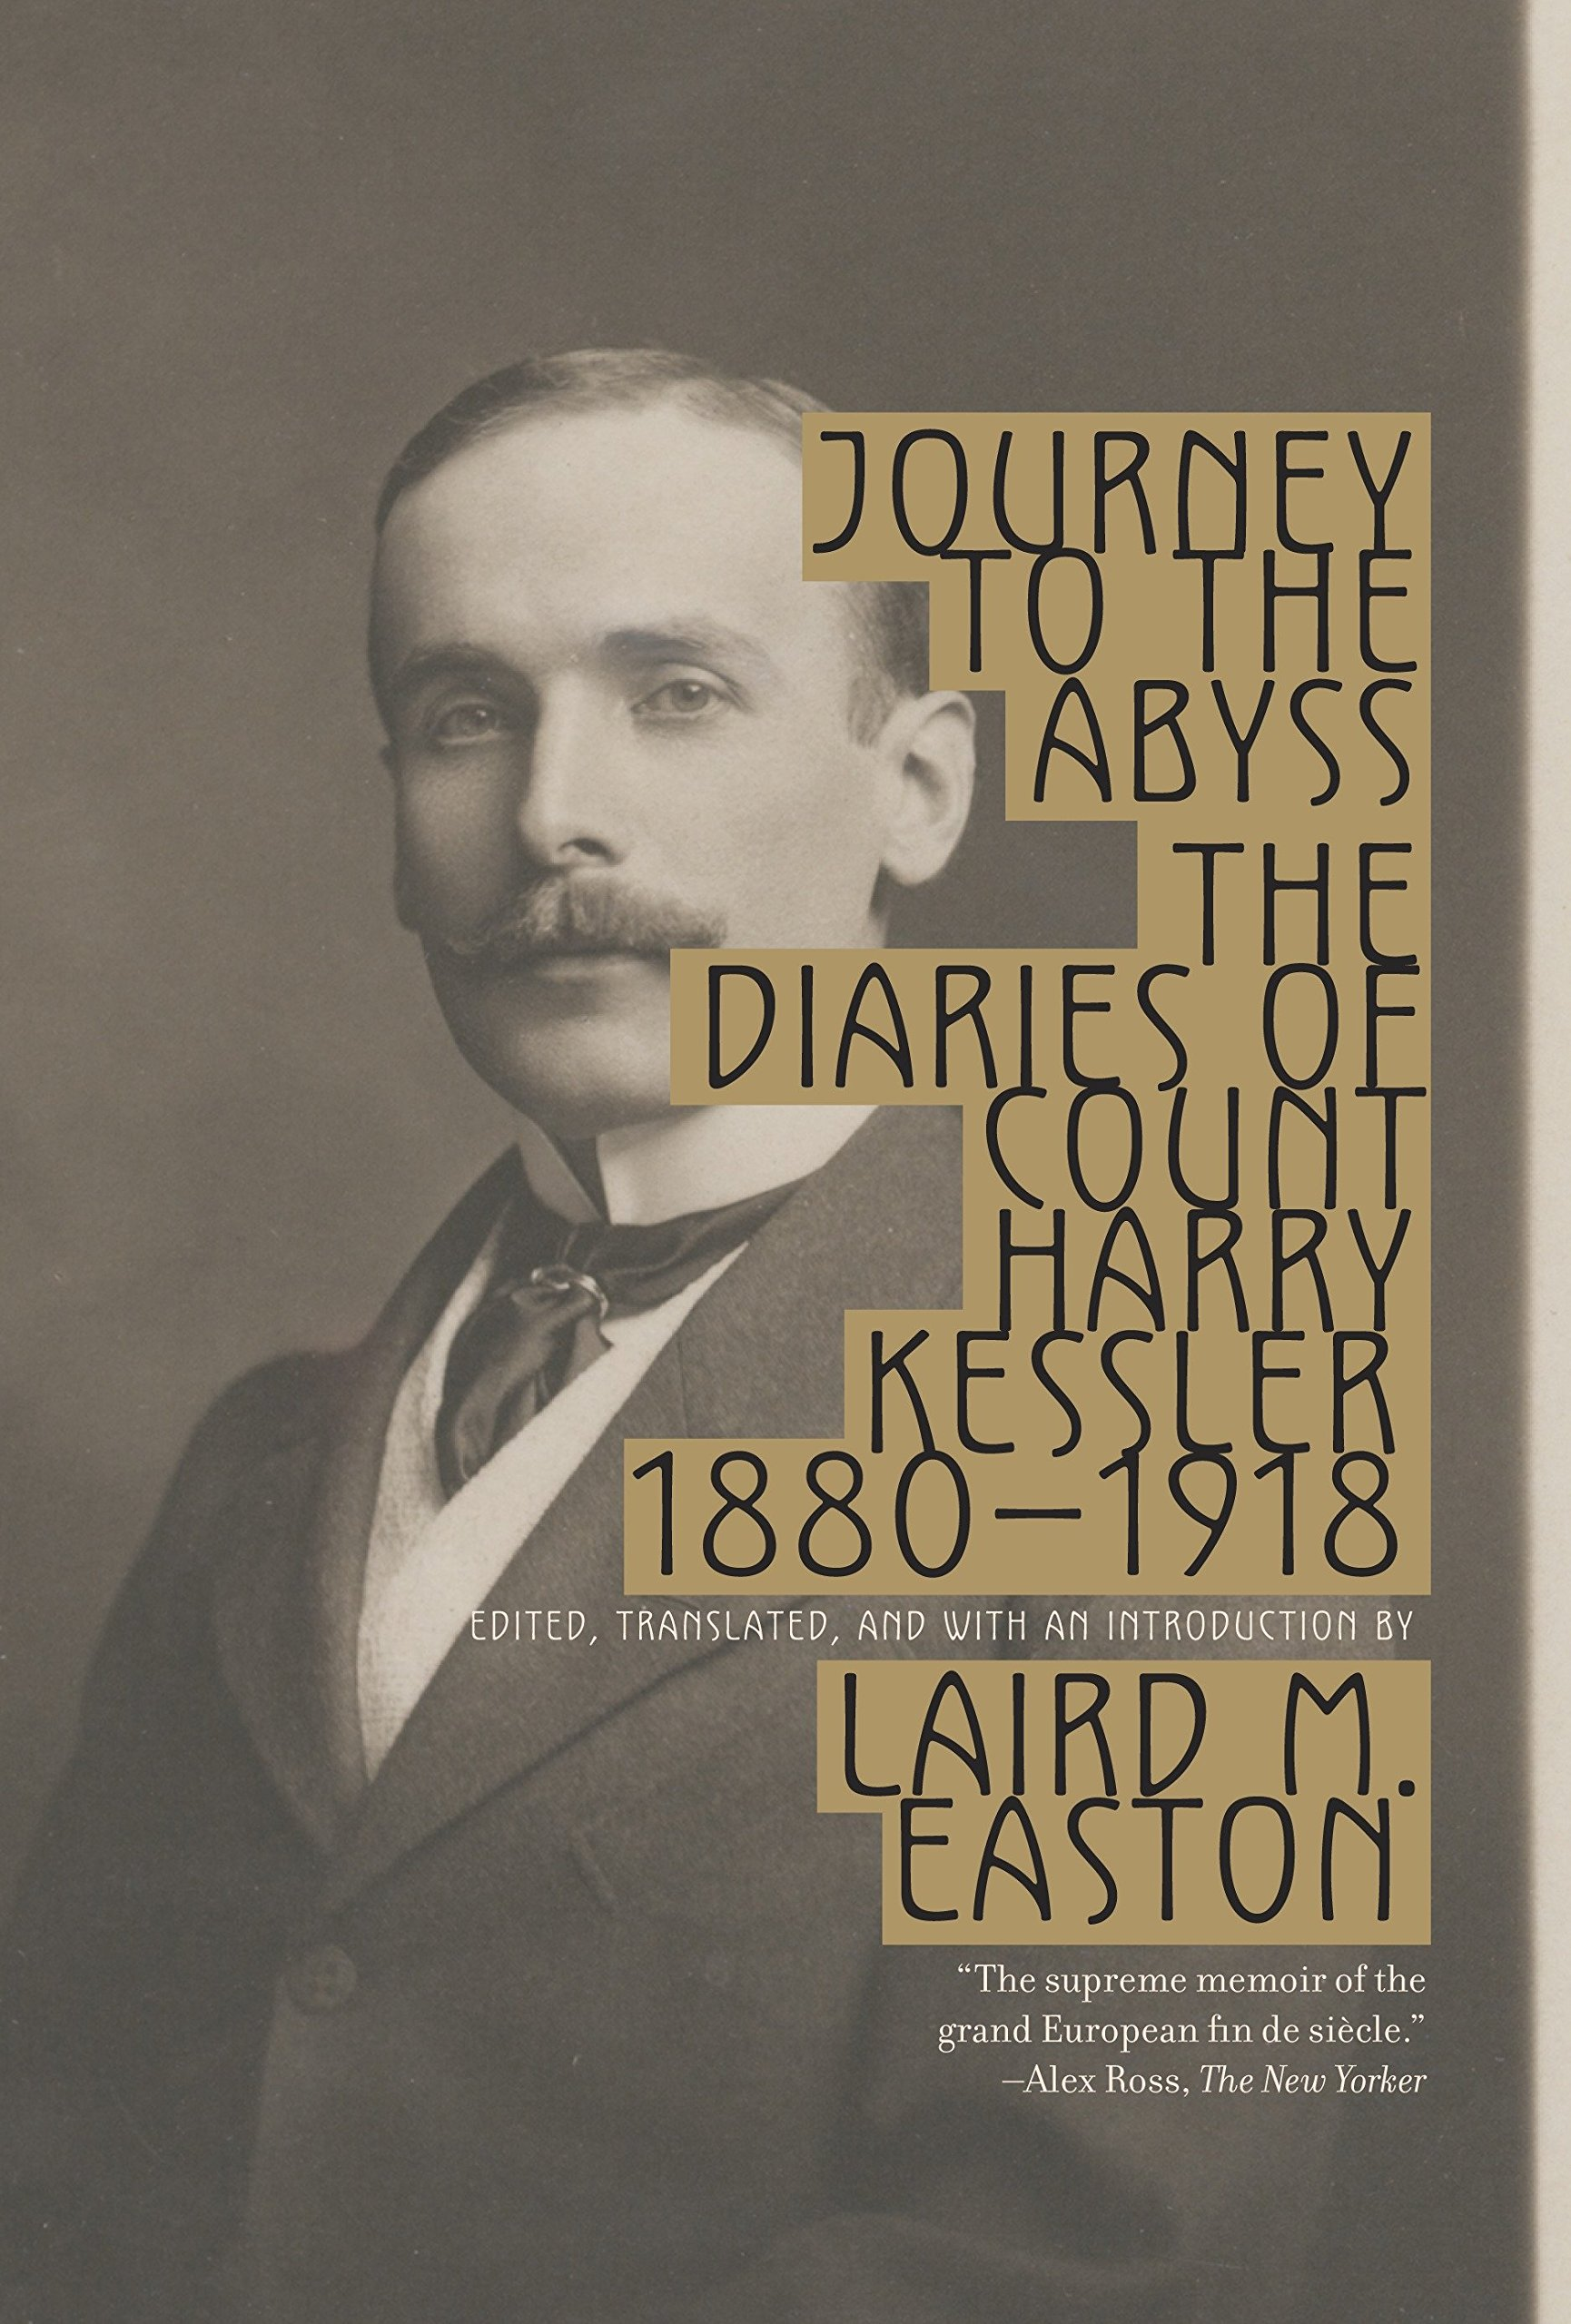 Amazon.com: Journey to the Abyss: The Diaries of Count Harry Kessler  1880-1918 (9780307278432): Harry Kessler, Laird Easton: Books